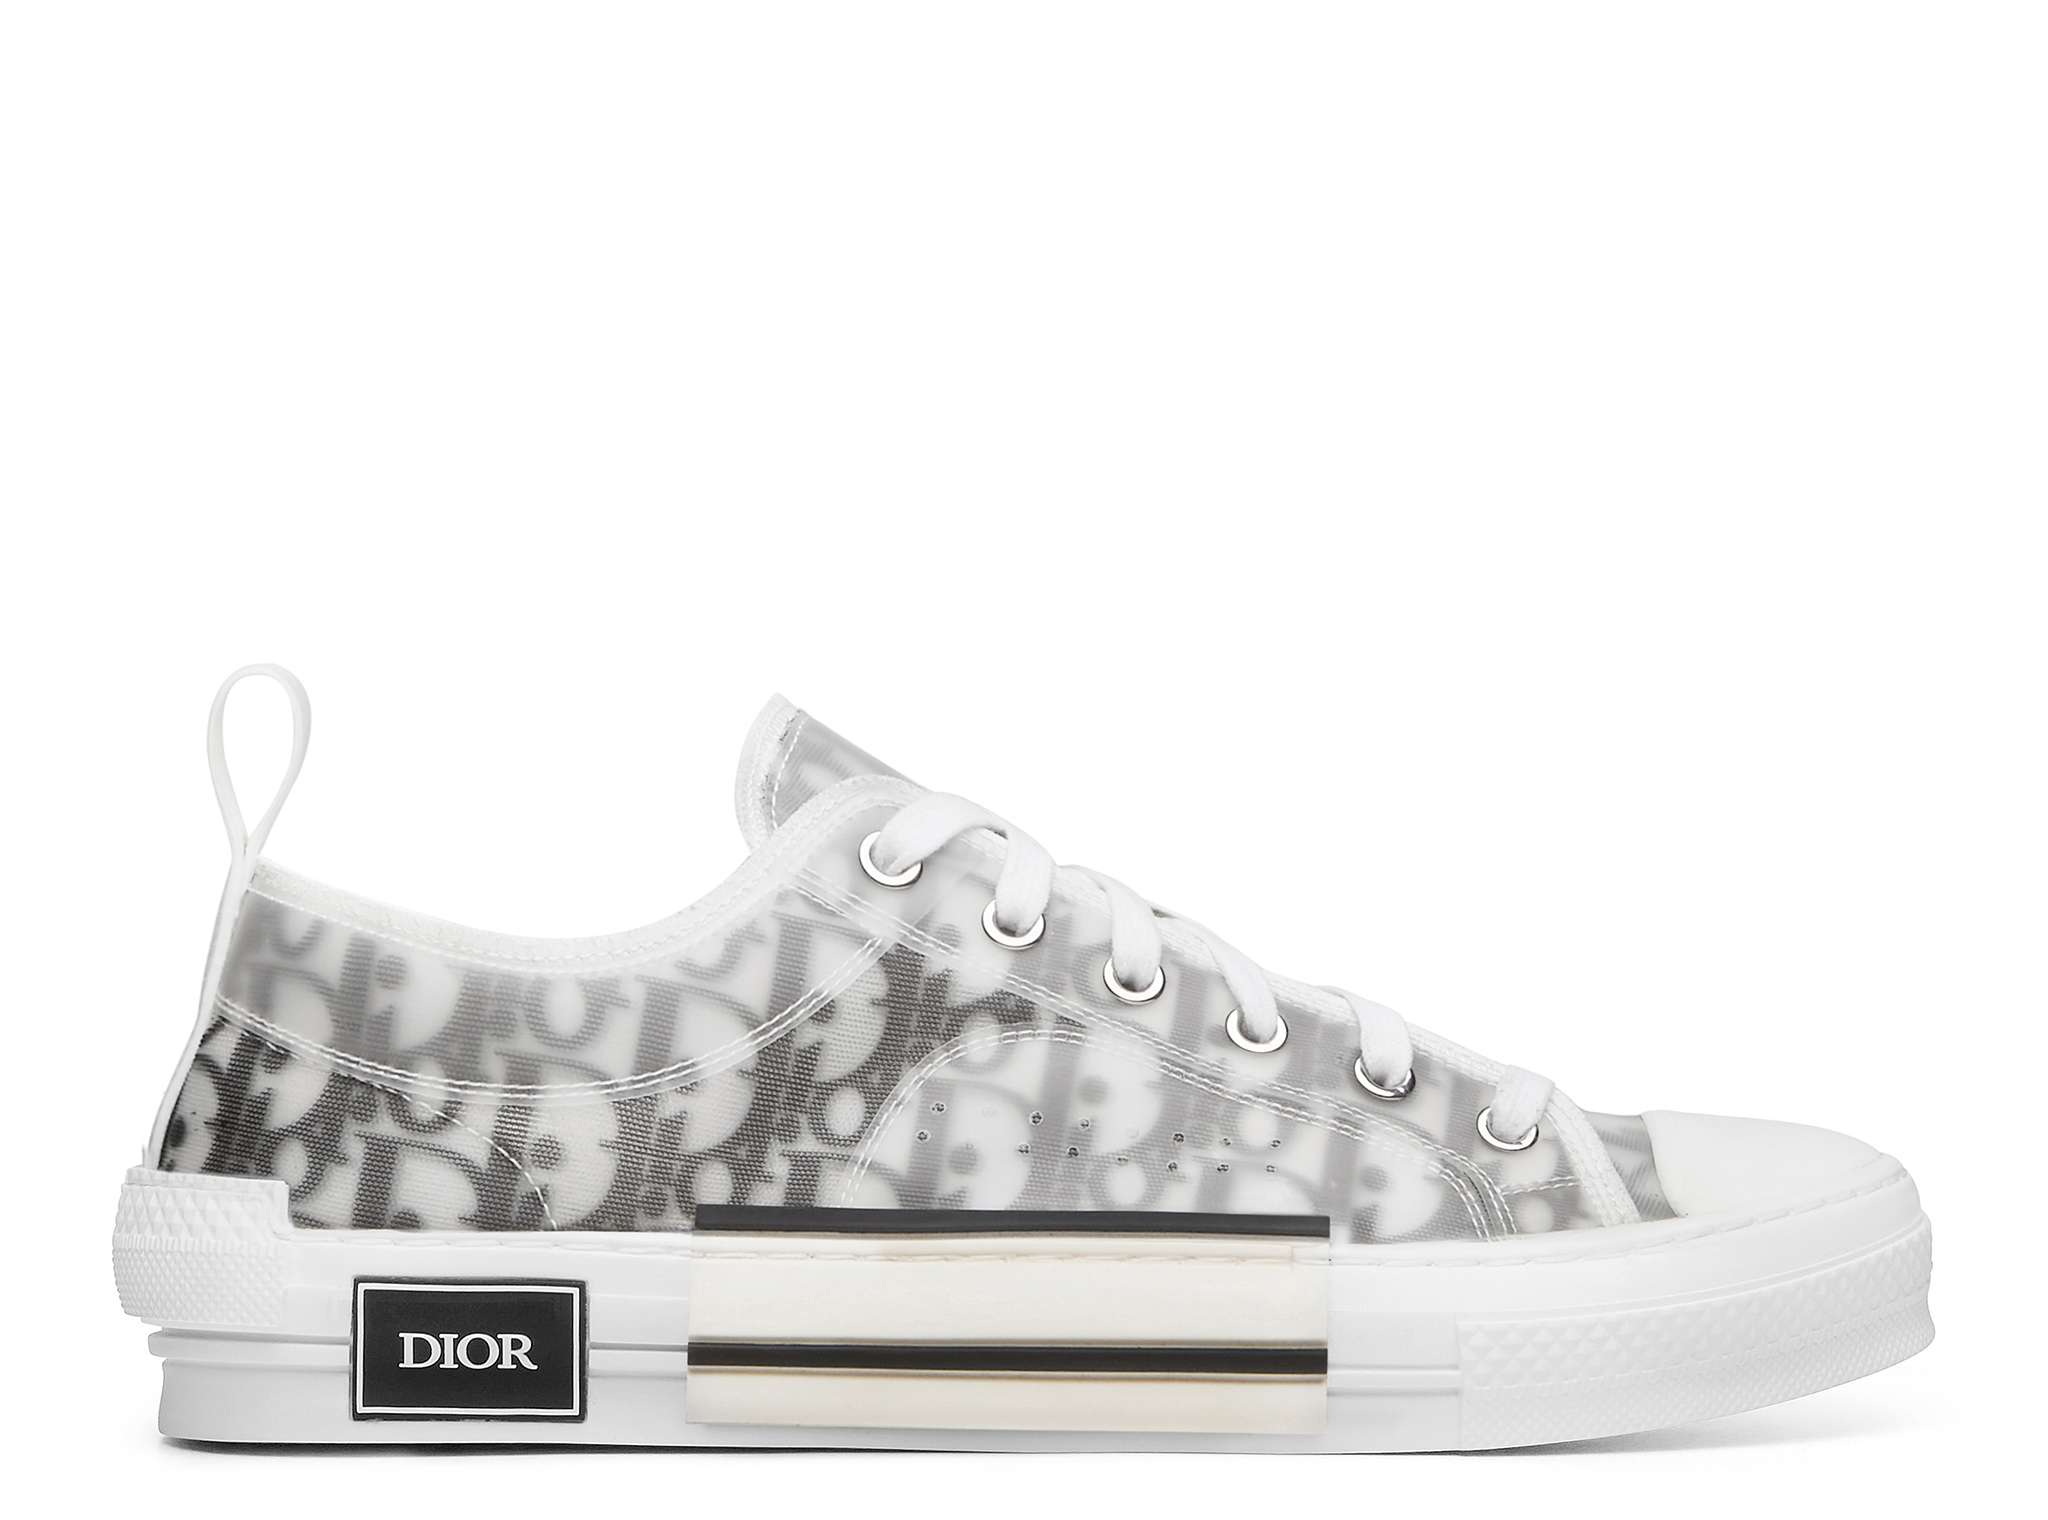 Dior Mens B23 Oblique Low Sneaker by Dior Sneakerboy Luxury Clothing In Store